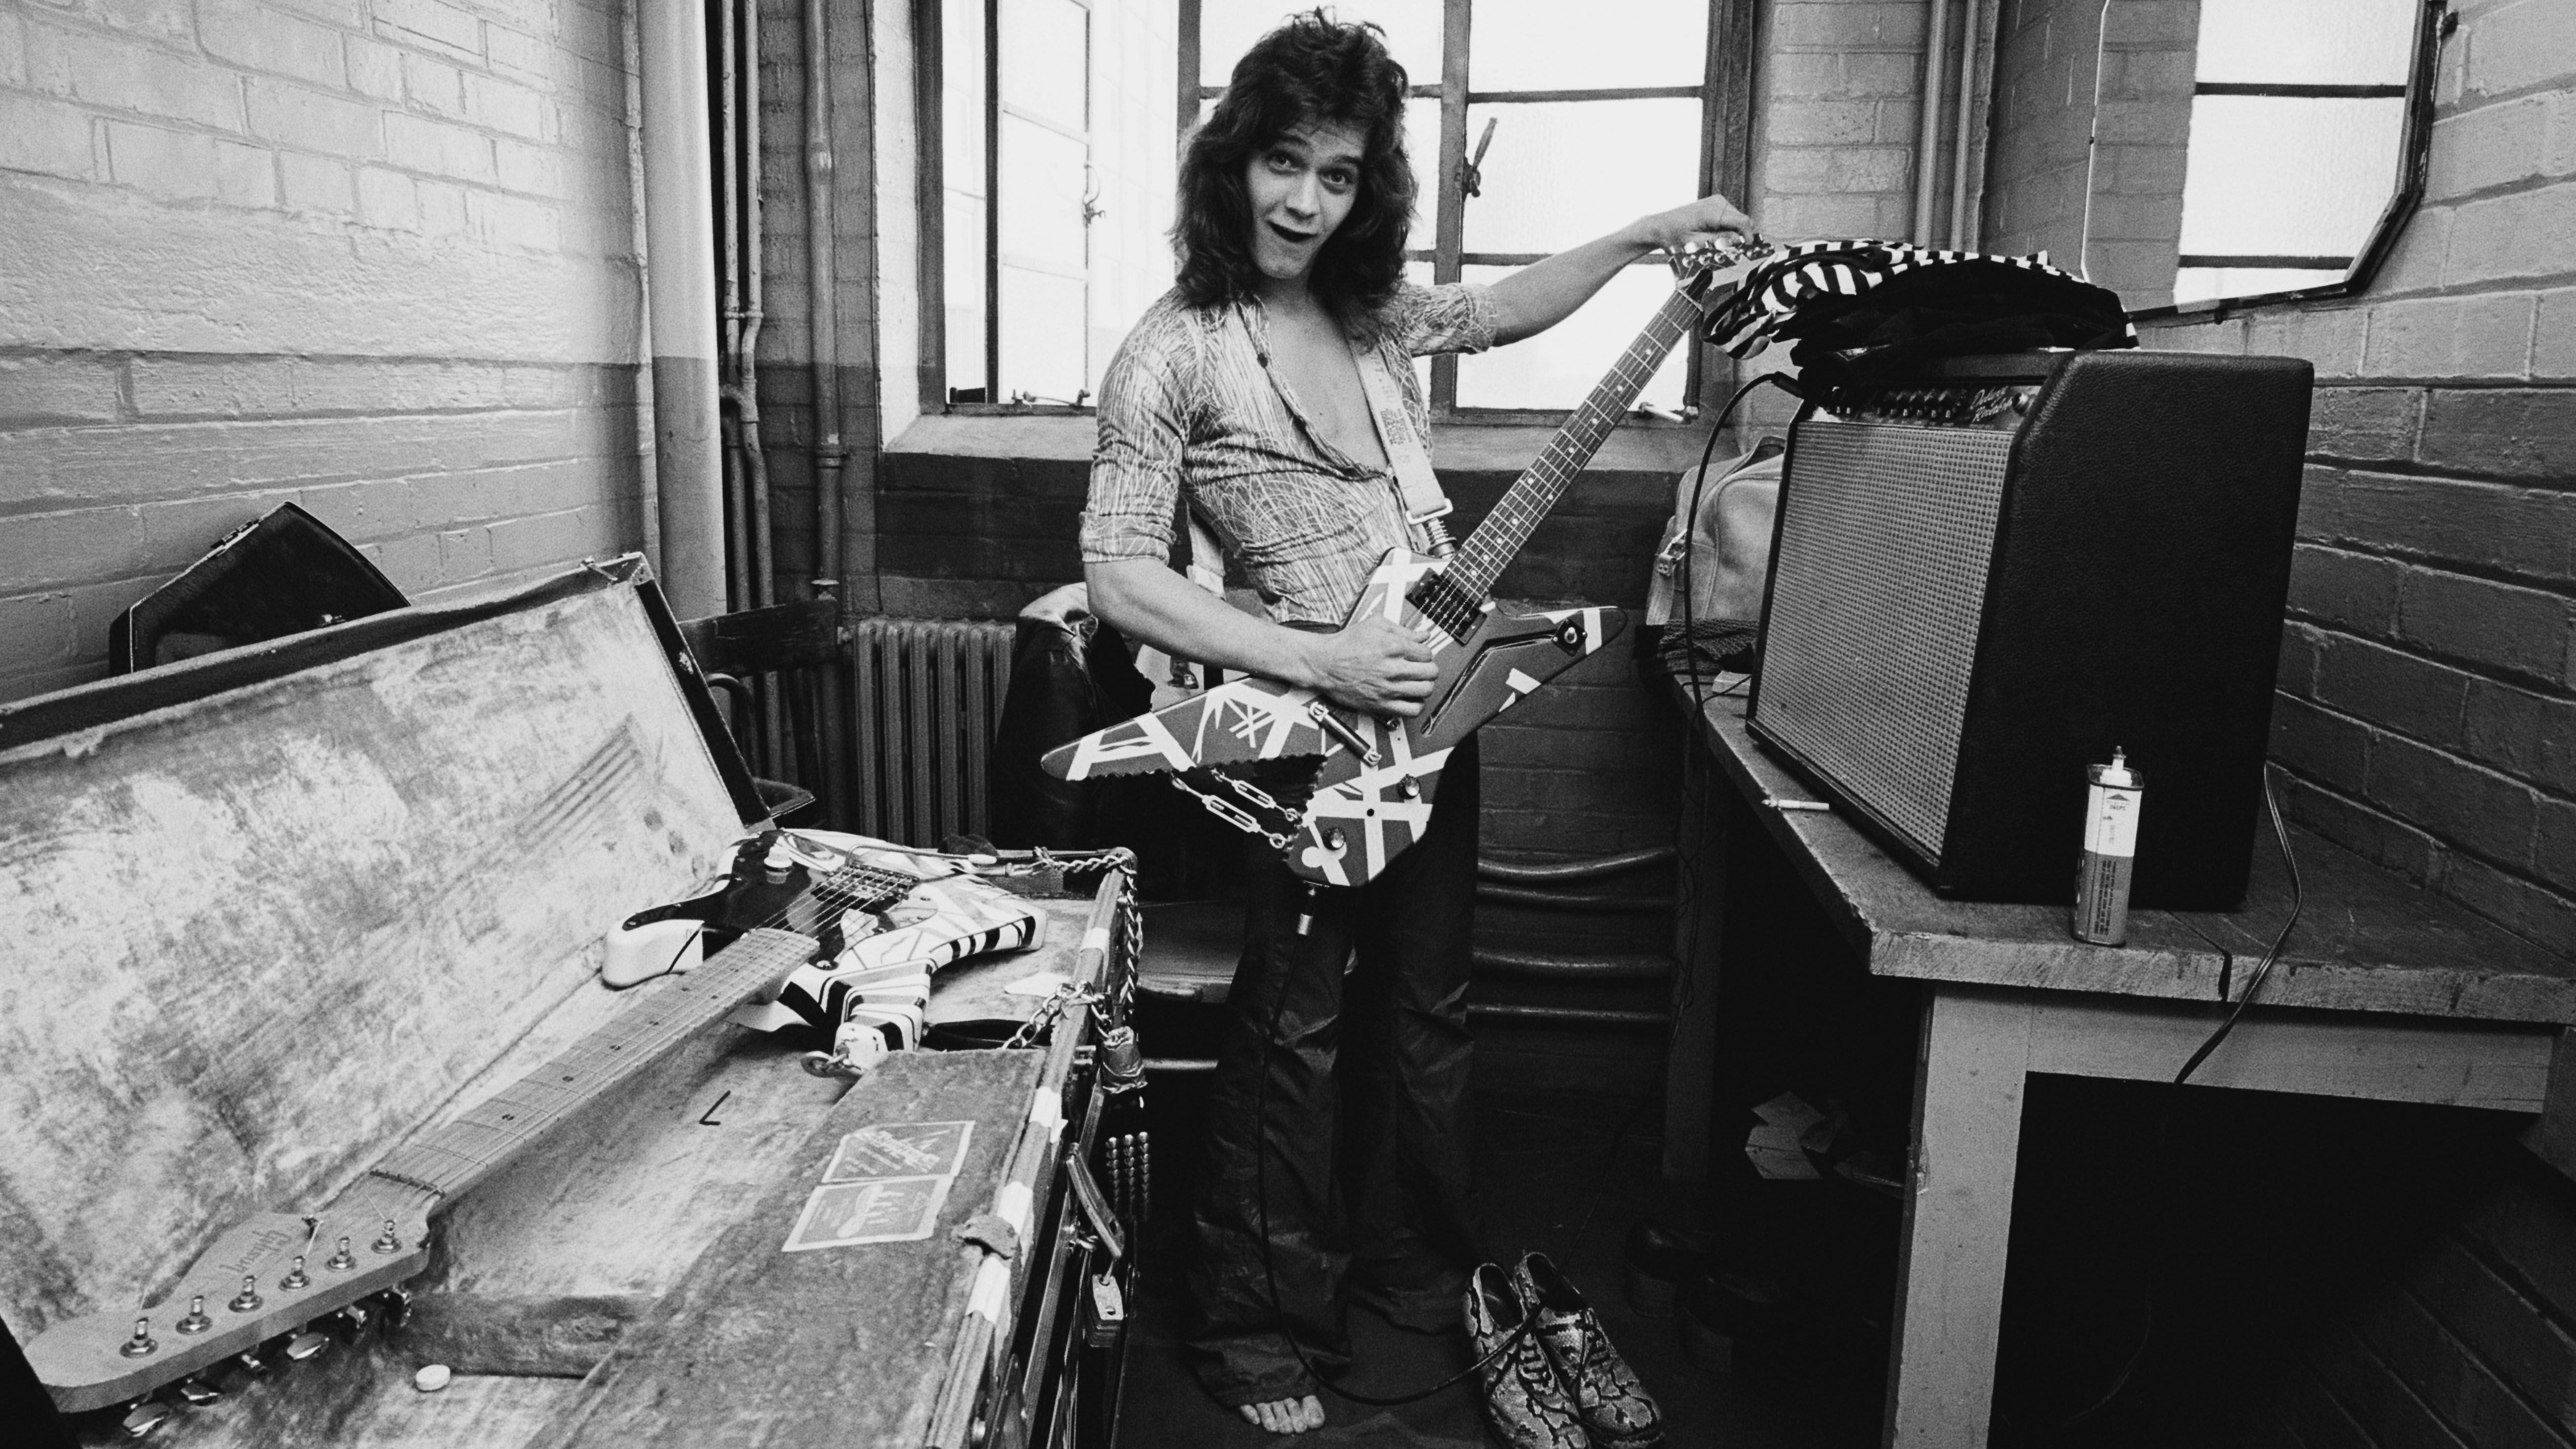 Guitar Skills Learn Hard Rock And Heavy Metal Guitar Essentials Musicradar In 2020 Eddie Van Halen Heavy Metal Guitar Van Halen